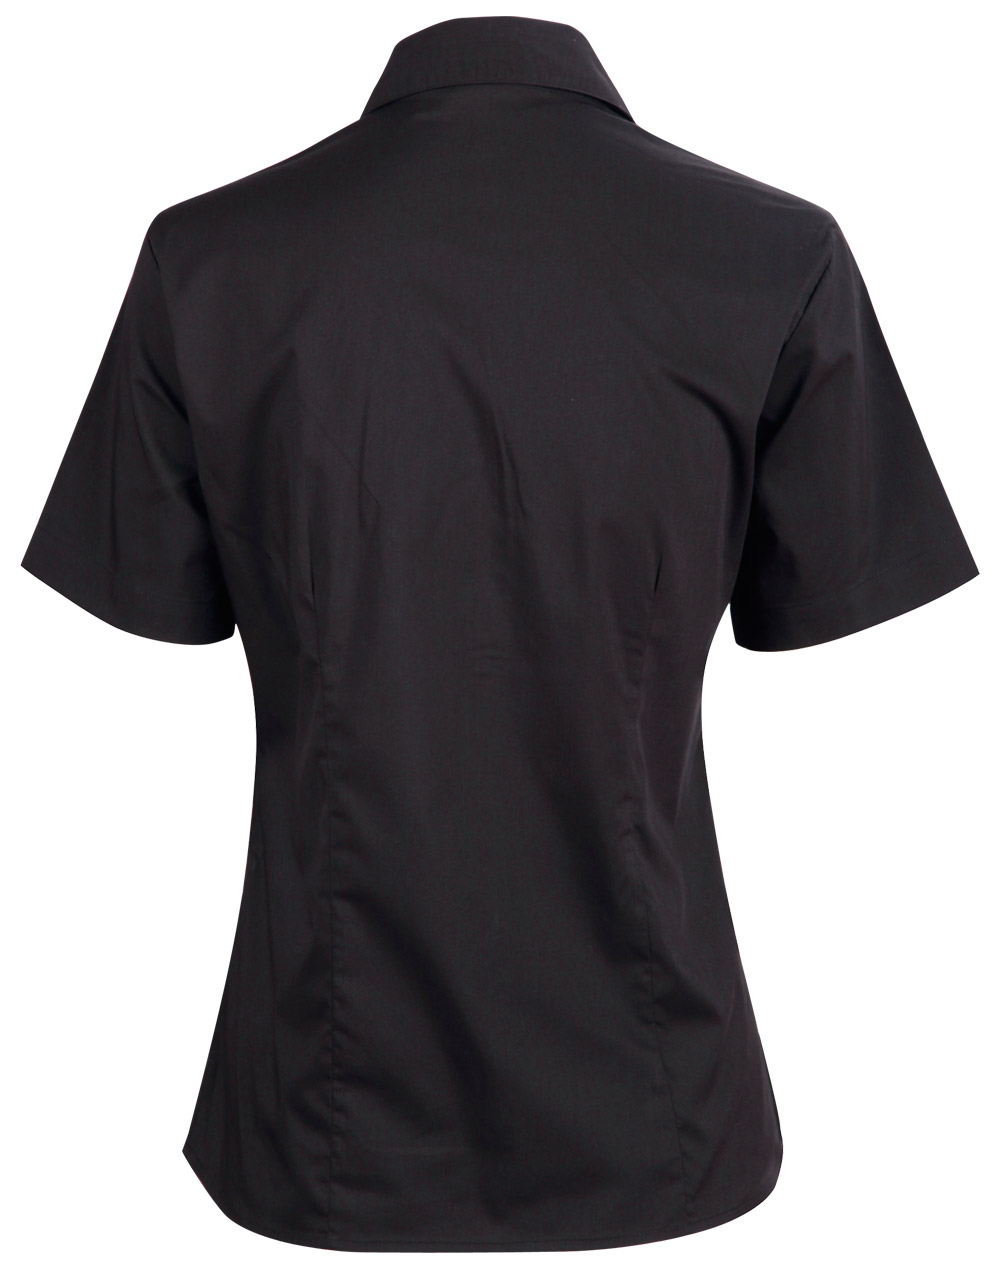 https://s3-ap-southeast-1.amazonaws.com/ws-imgs/BUSINESSSHIRTS/BS07S_Black_Back.jpg